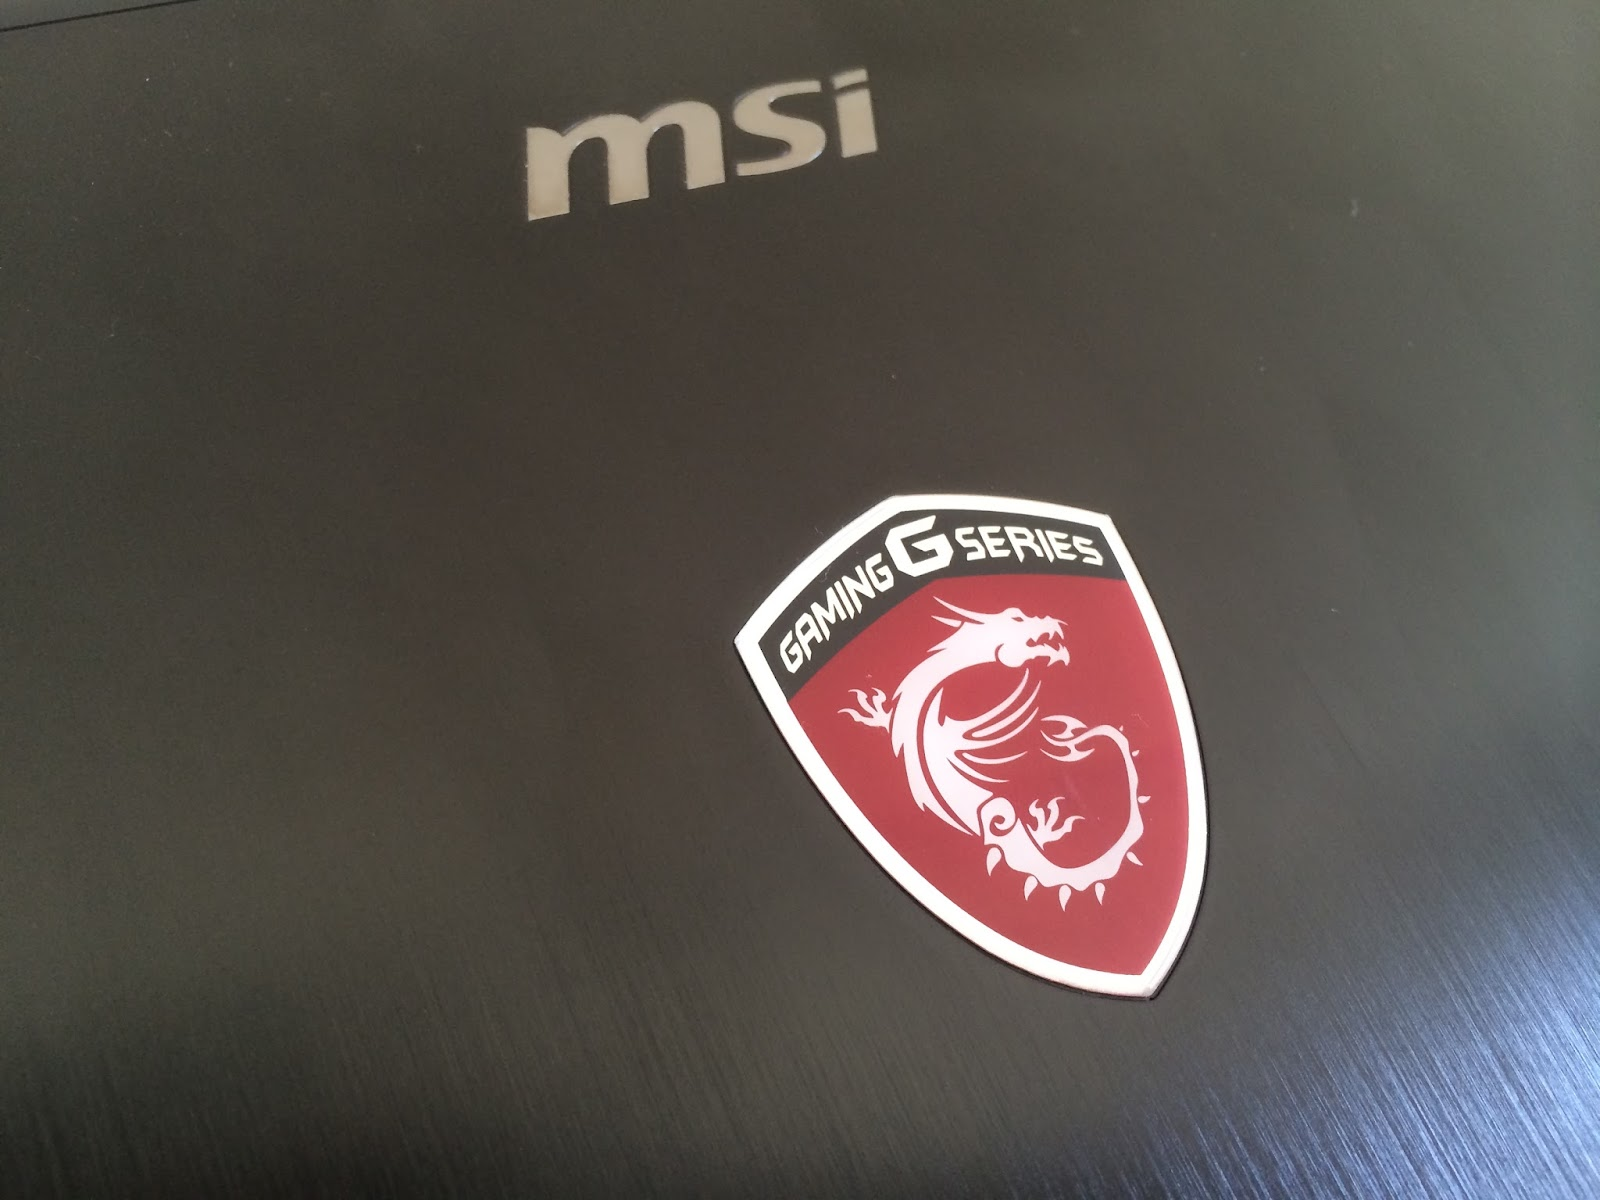 Msi g series wallpaper notebookreview - Aside Of The Brushed Metal Texture Lid The Glowing Msi Dragon Also Gives An Additional Premium Feel Of A Gaming Notebook